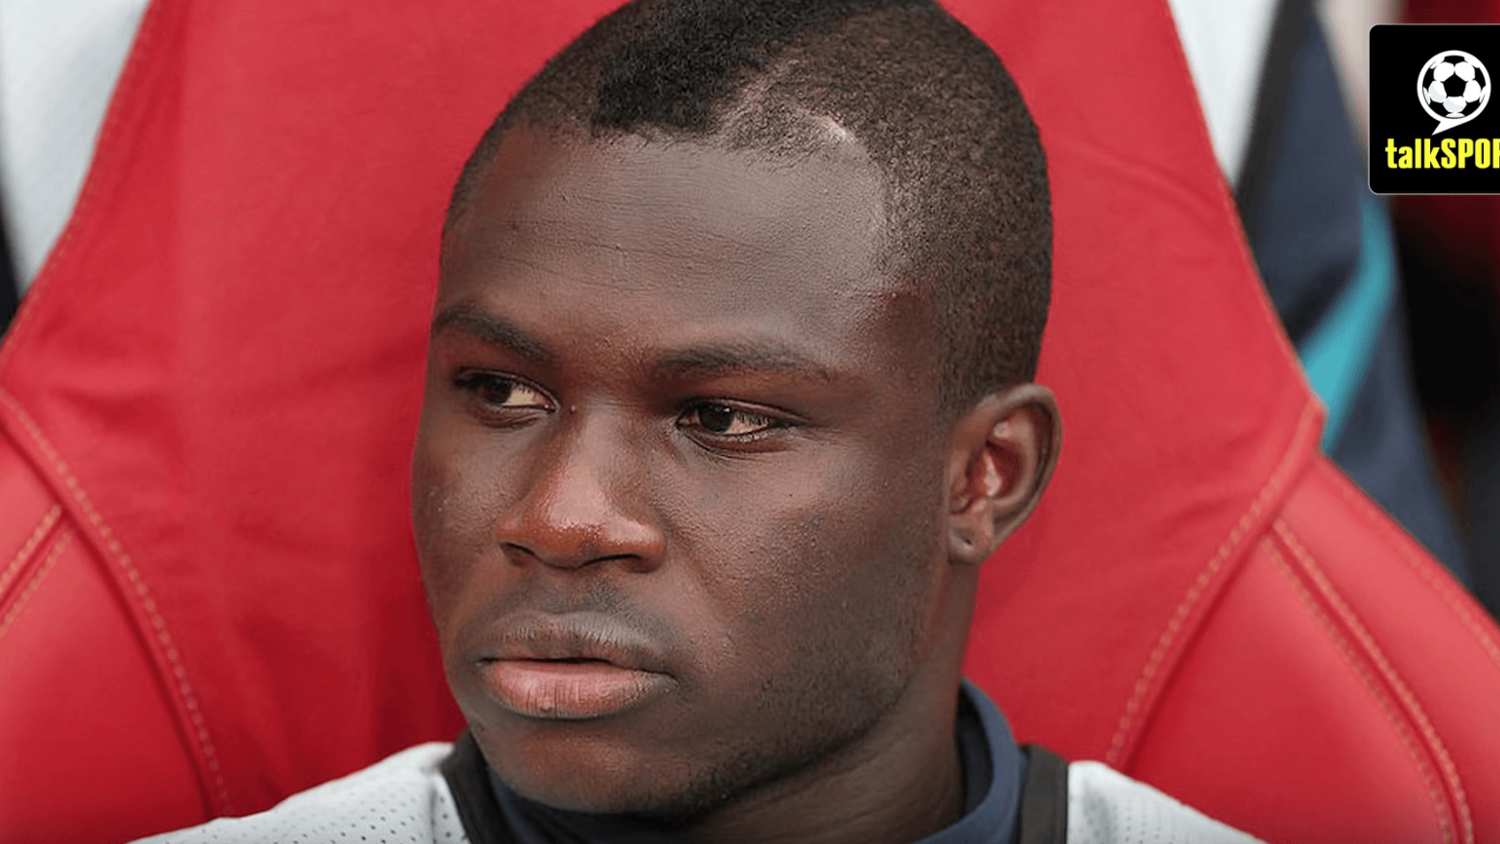 Emmanuel Frimpong's Hilarious TalkSport Interview